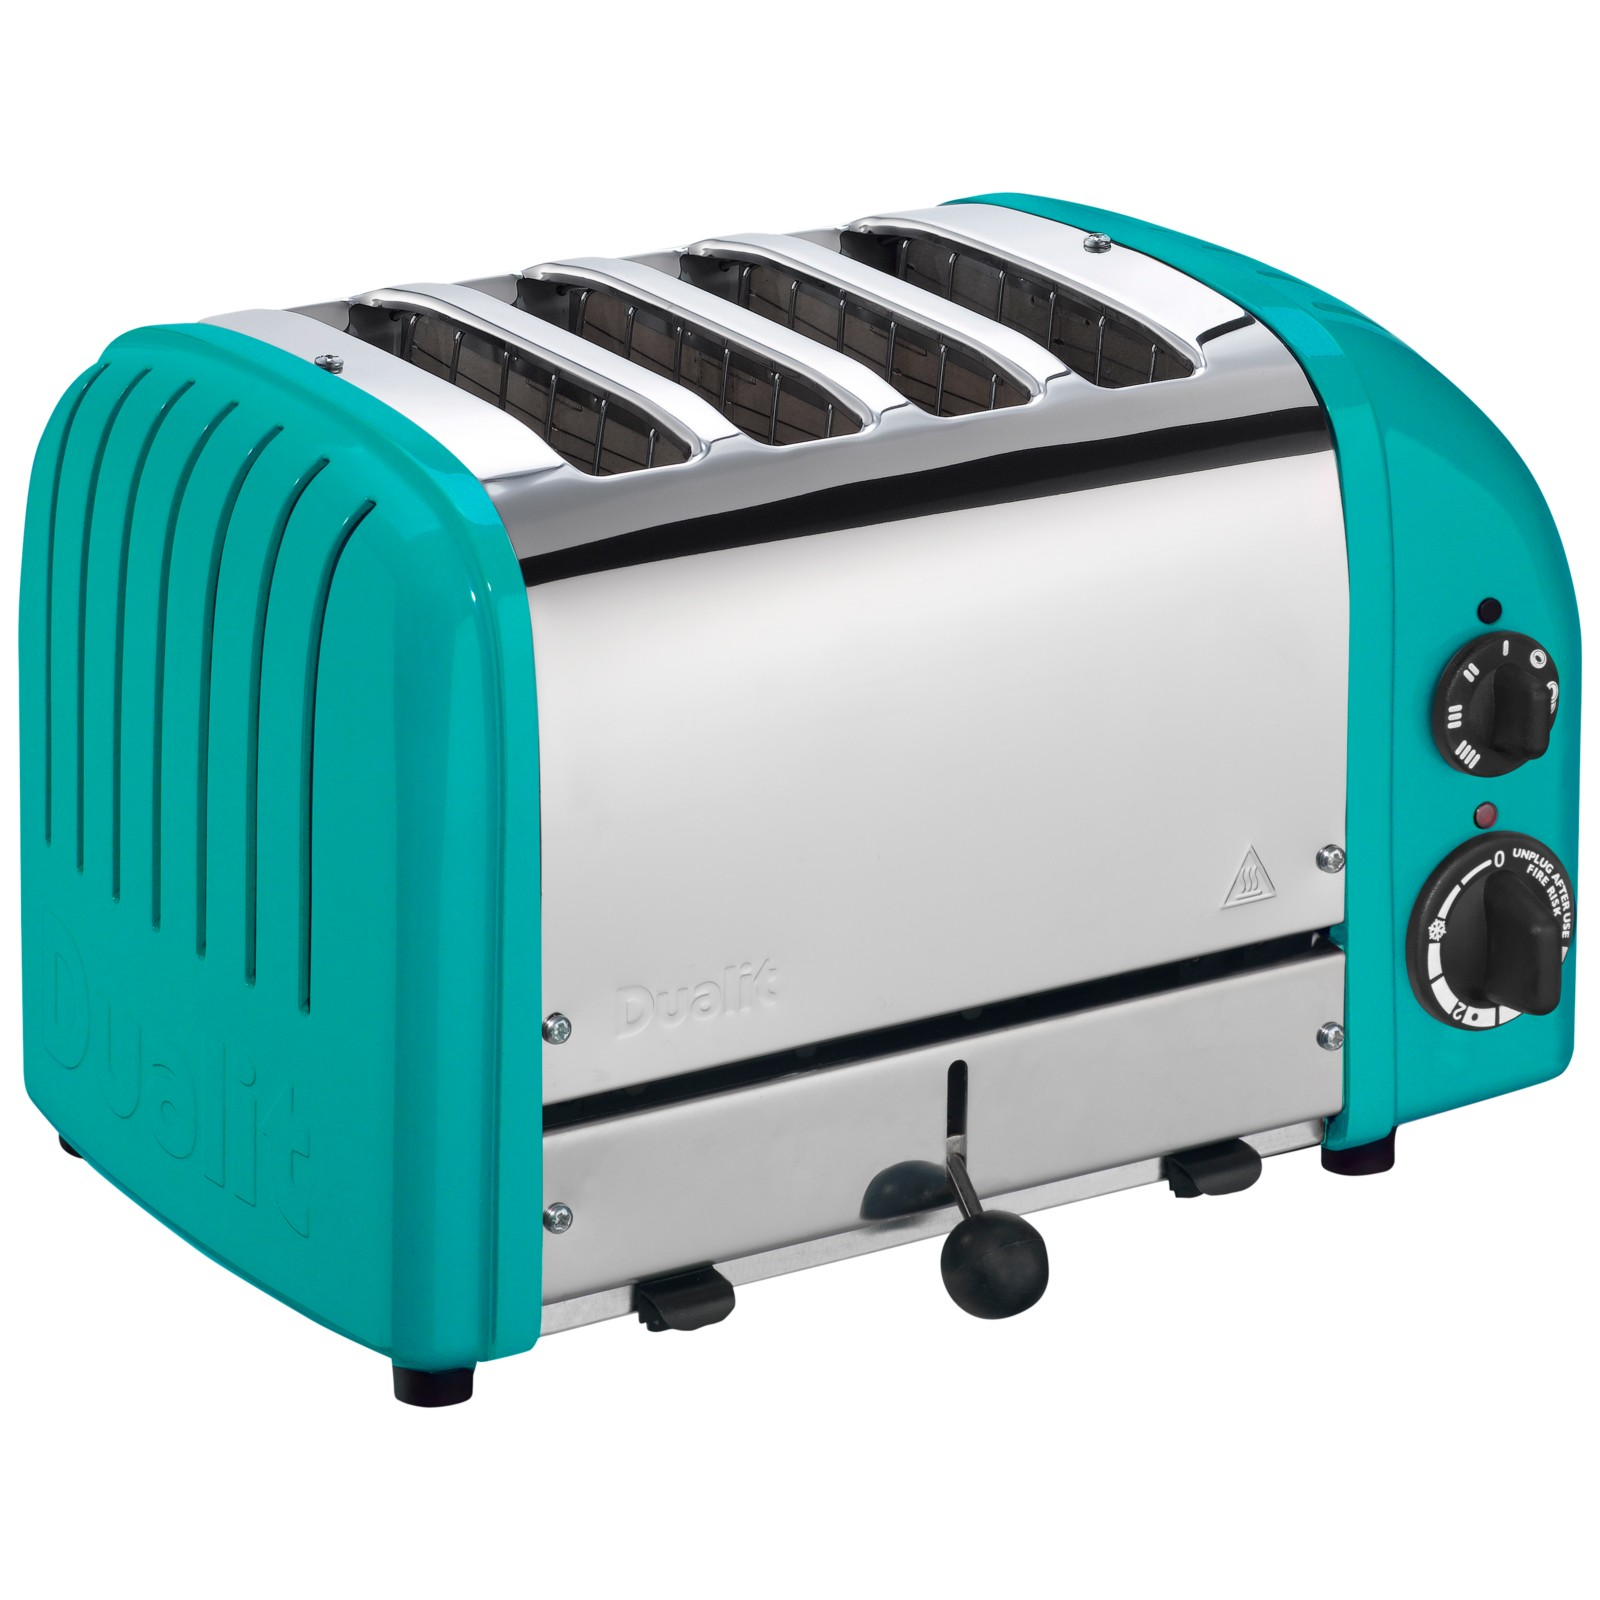 Dualit Made to Order Classic 4-Slice Toaster Stainless Steel/Turquoise Blue Gloss